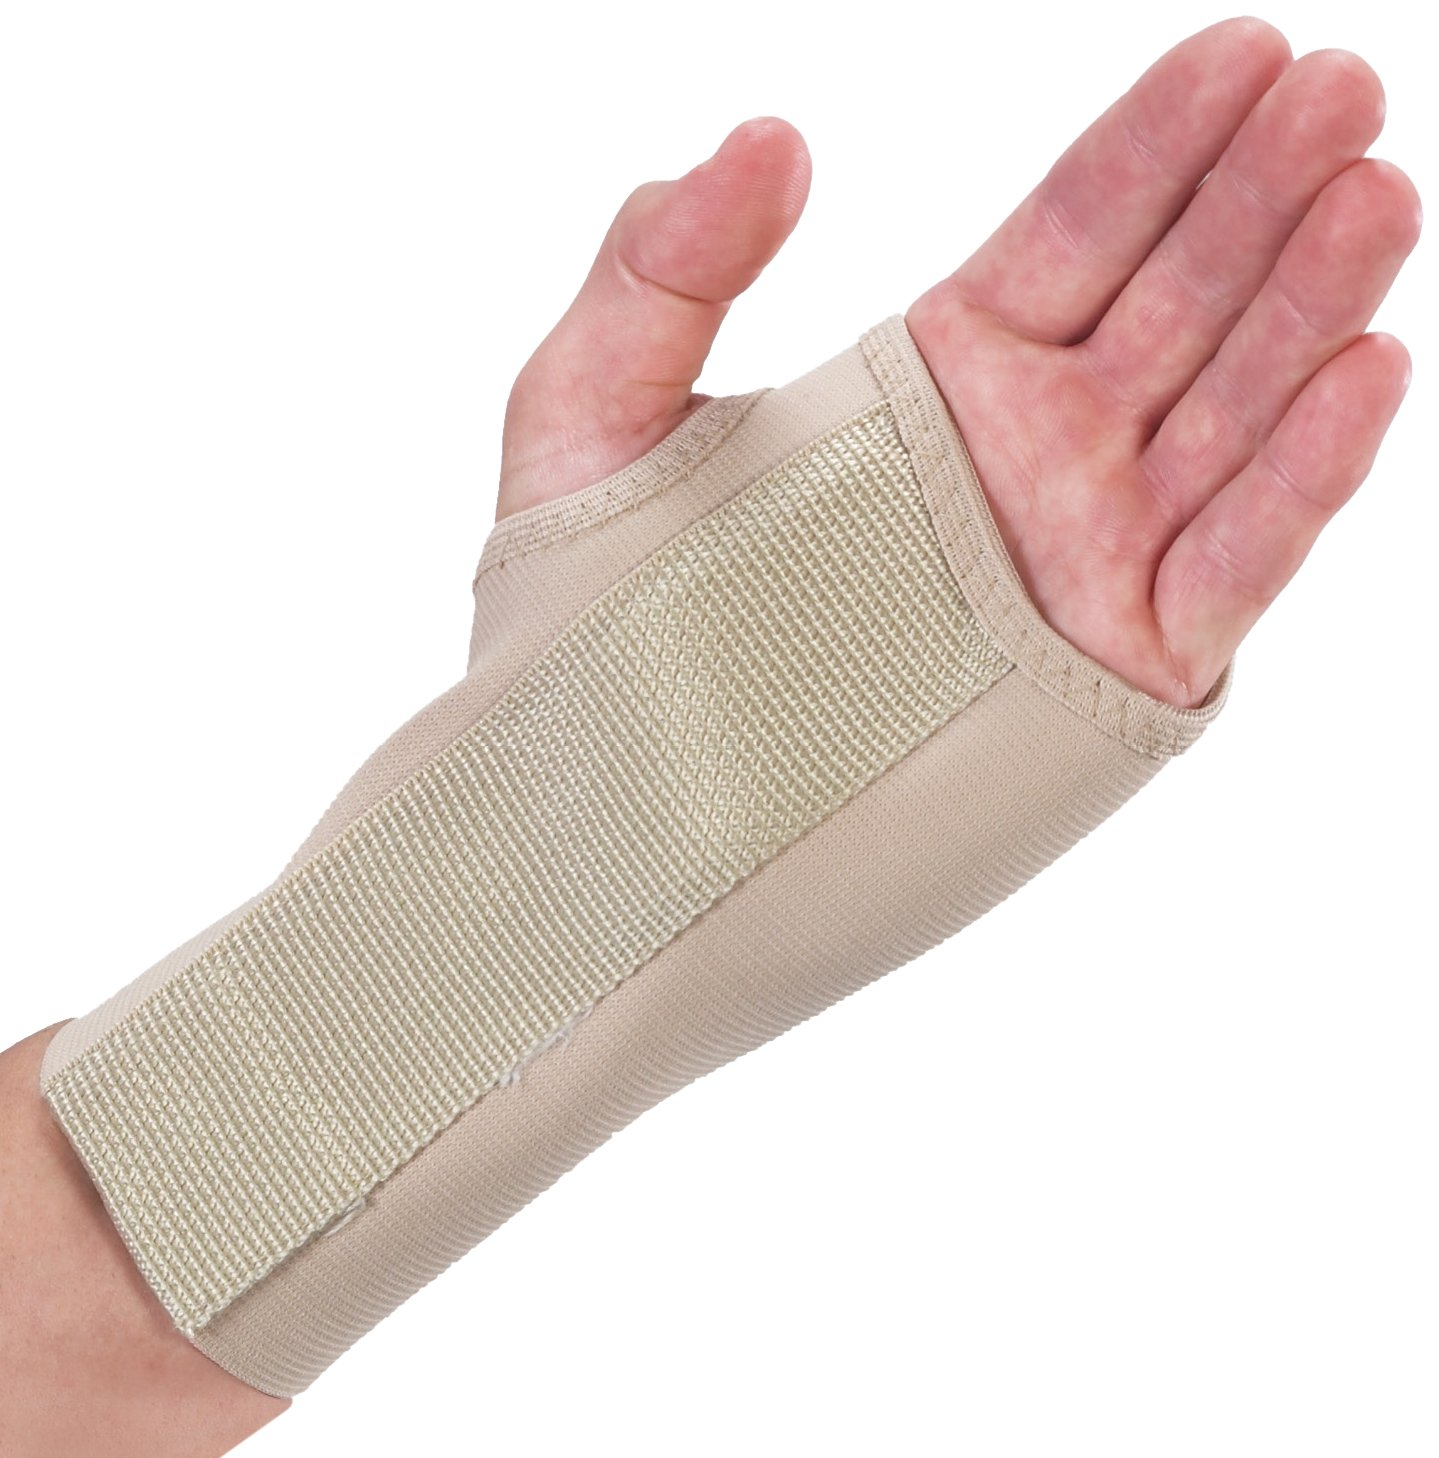 Bilt-Rite Mastex Health 7 Inch Left Wrist Splint Medium Beige